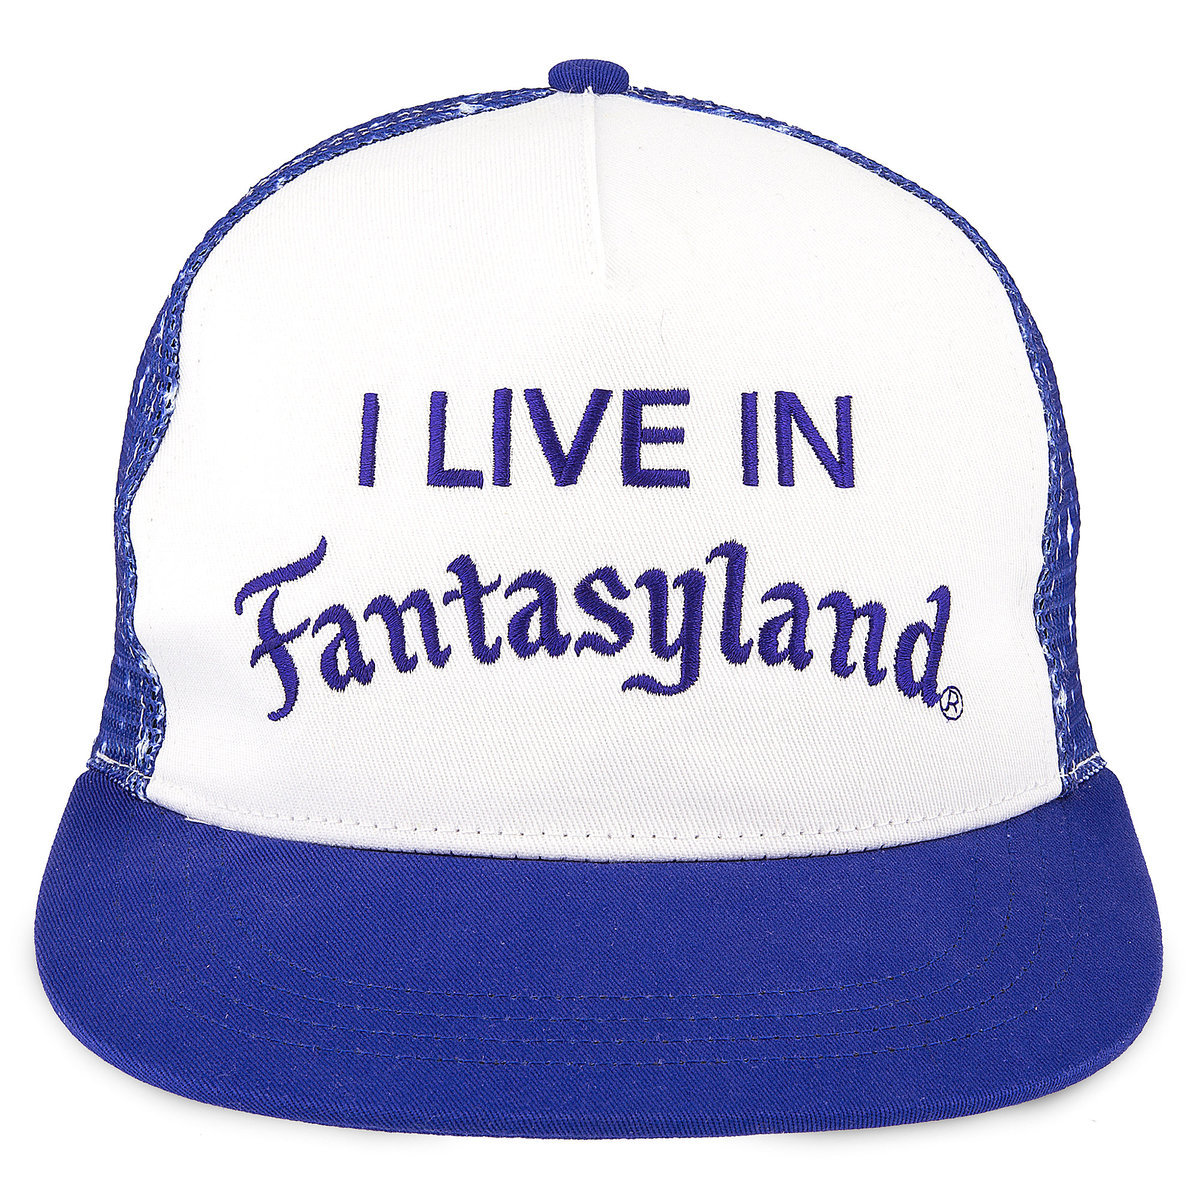 8aa50c55c24 Product Image of   I Live in Fantasyland   Trucker Hat ...